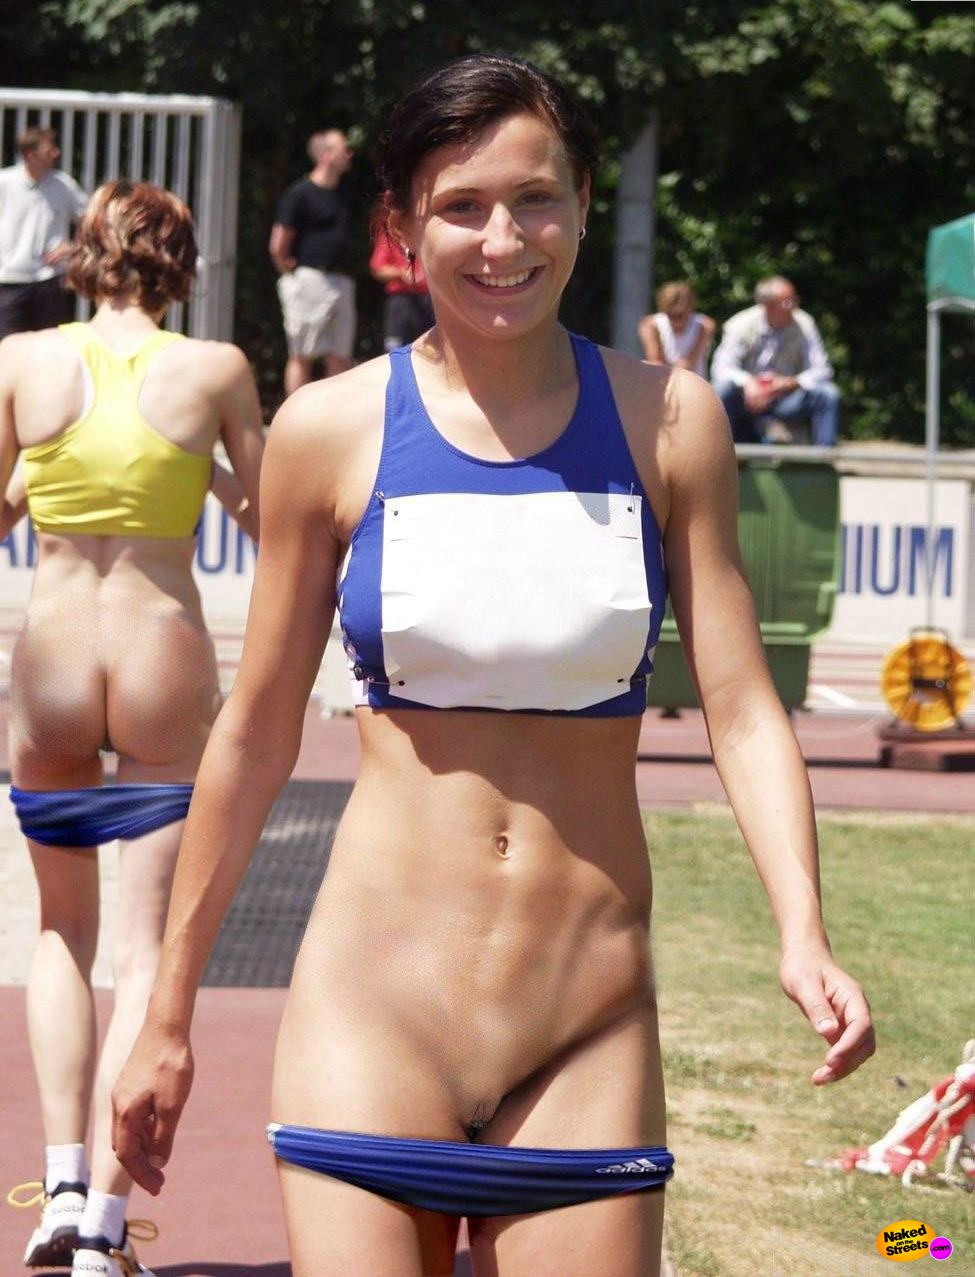 Accidental nude in sports